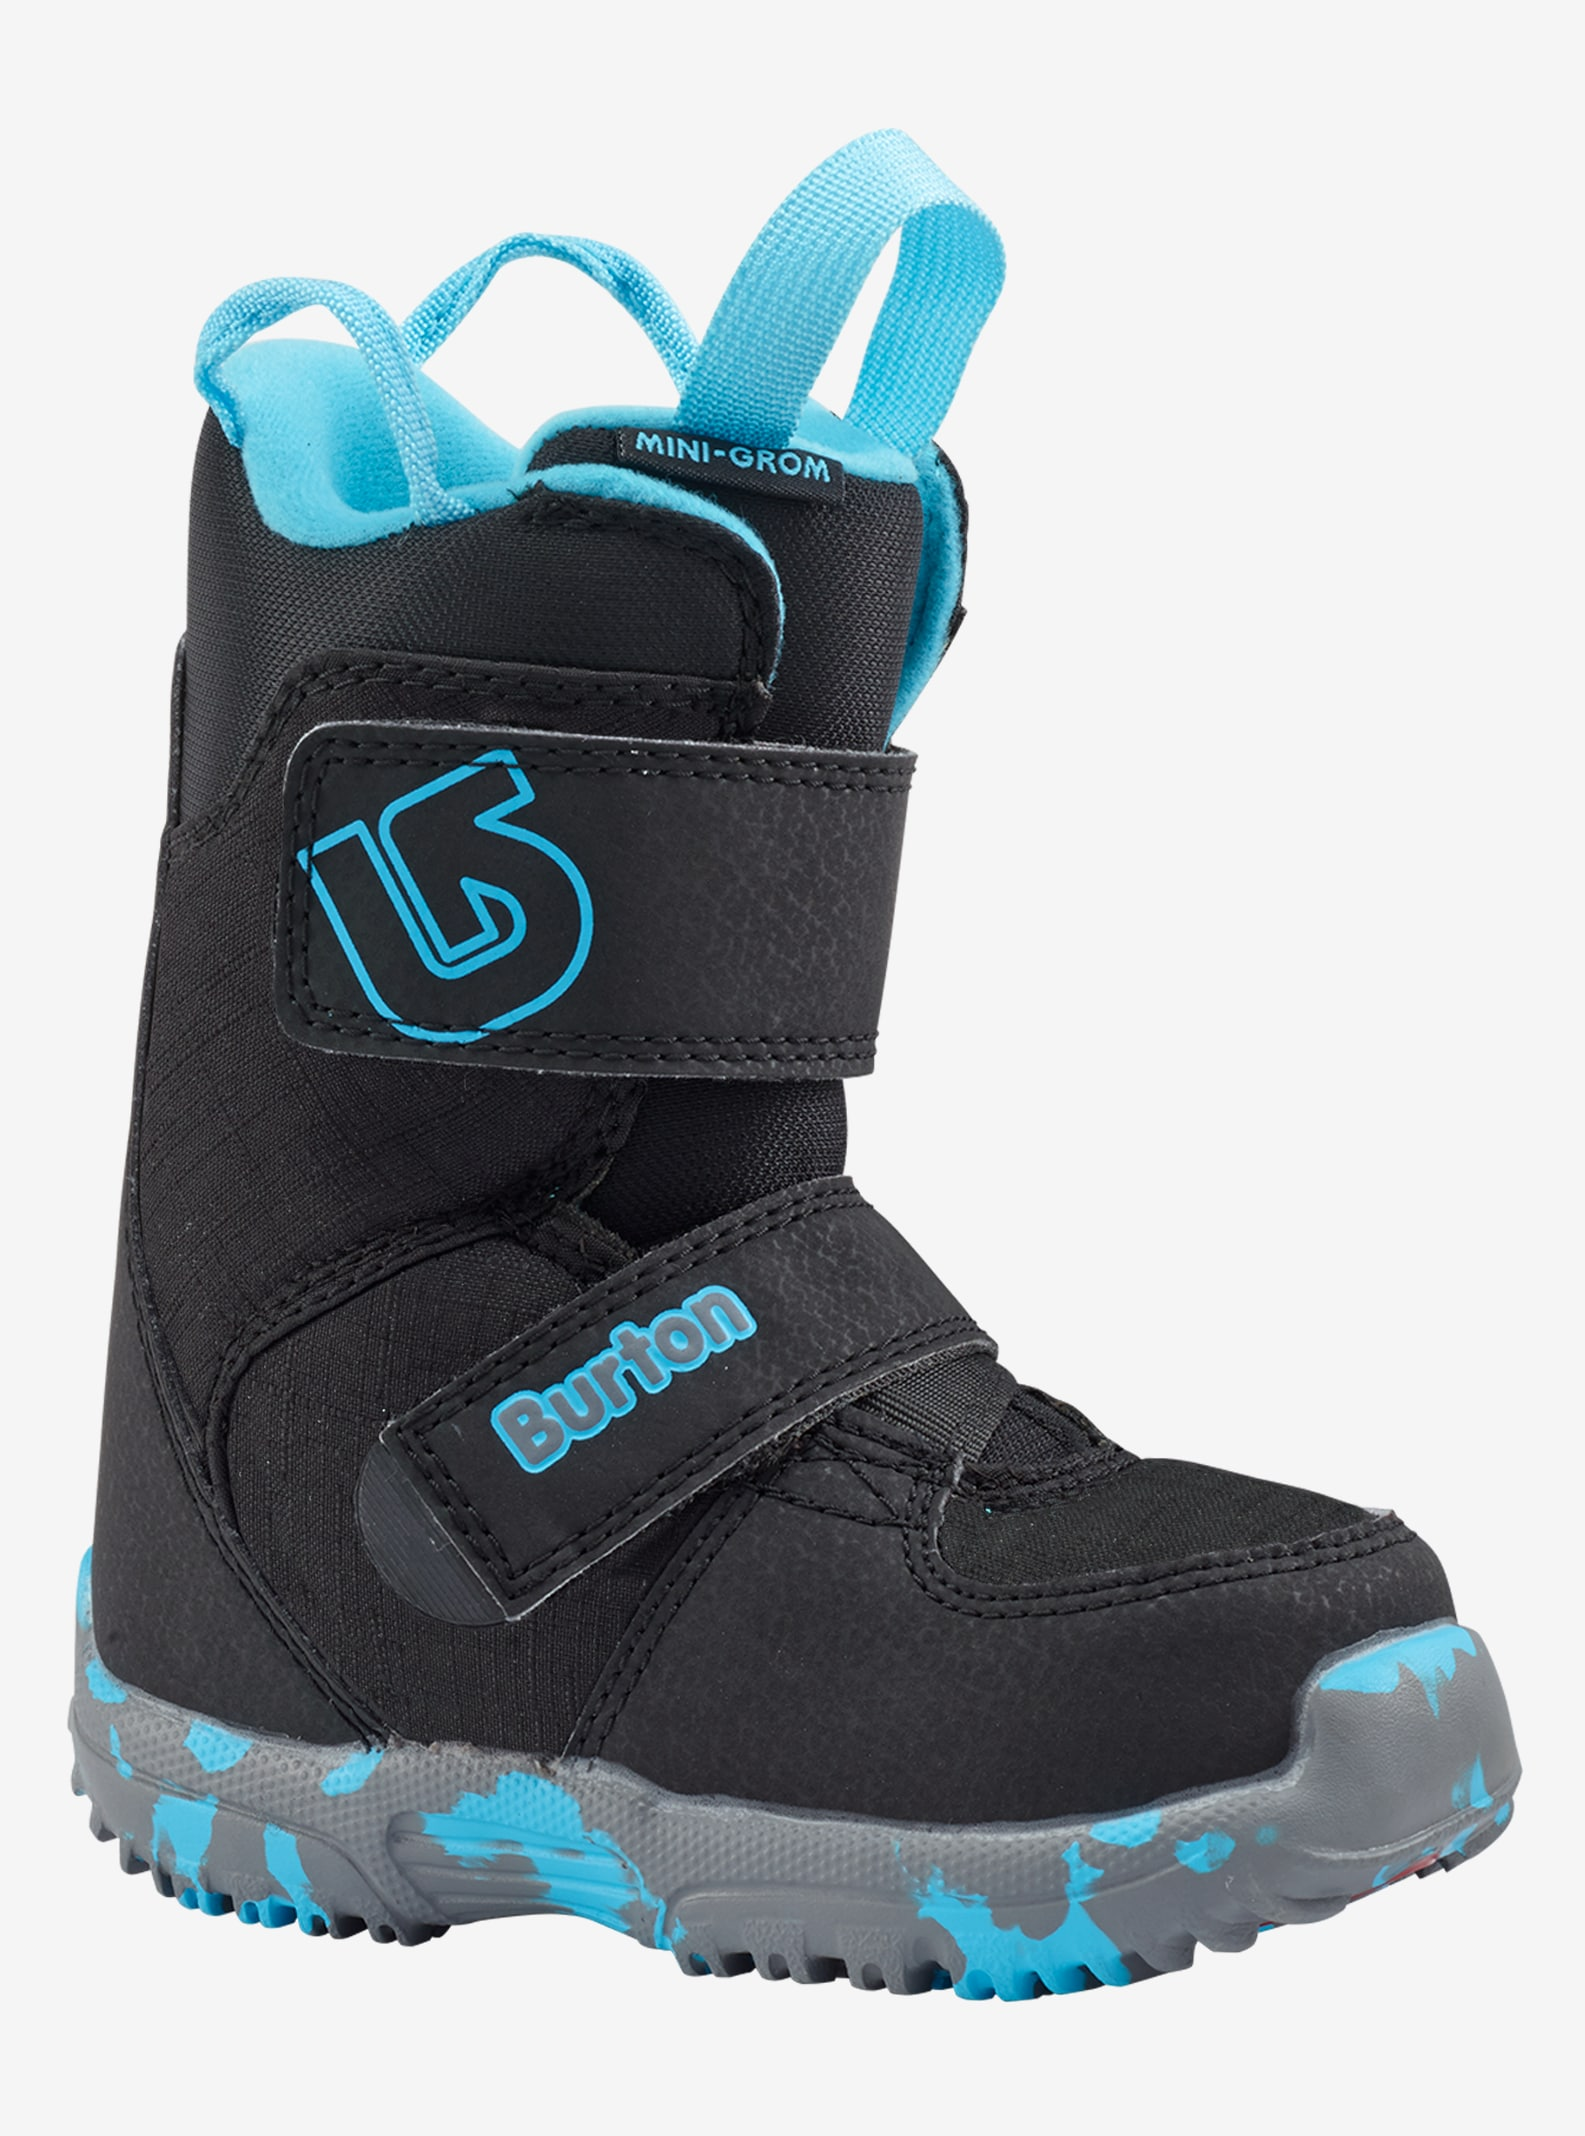 Kids' Burton Mini-Grom Snowboard Boot shown in Black